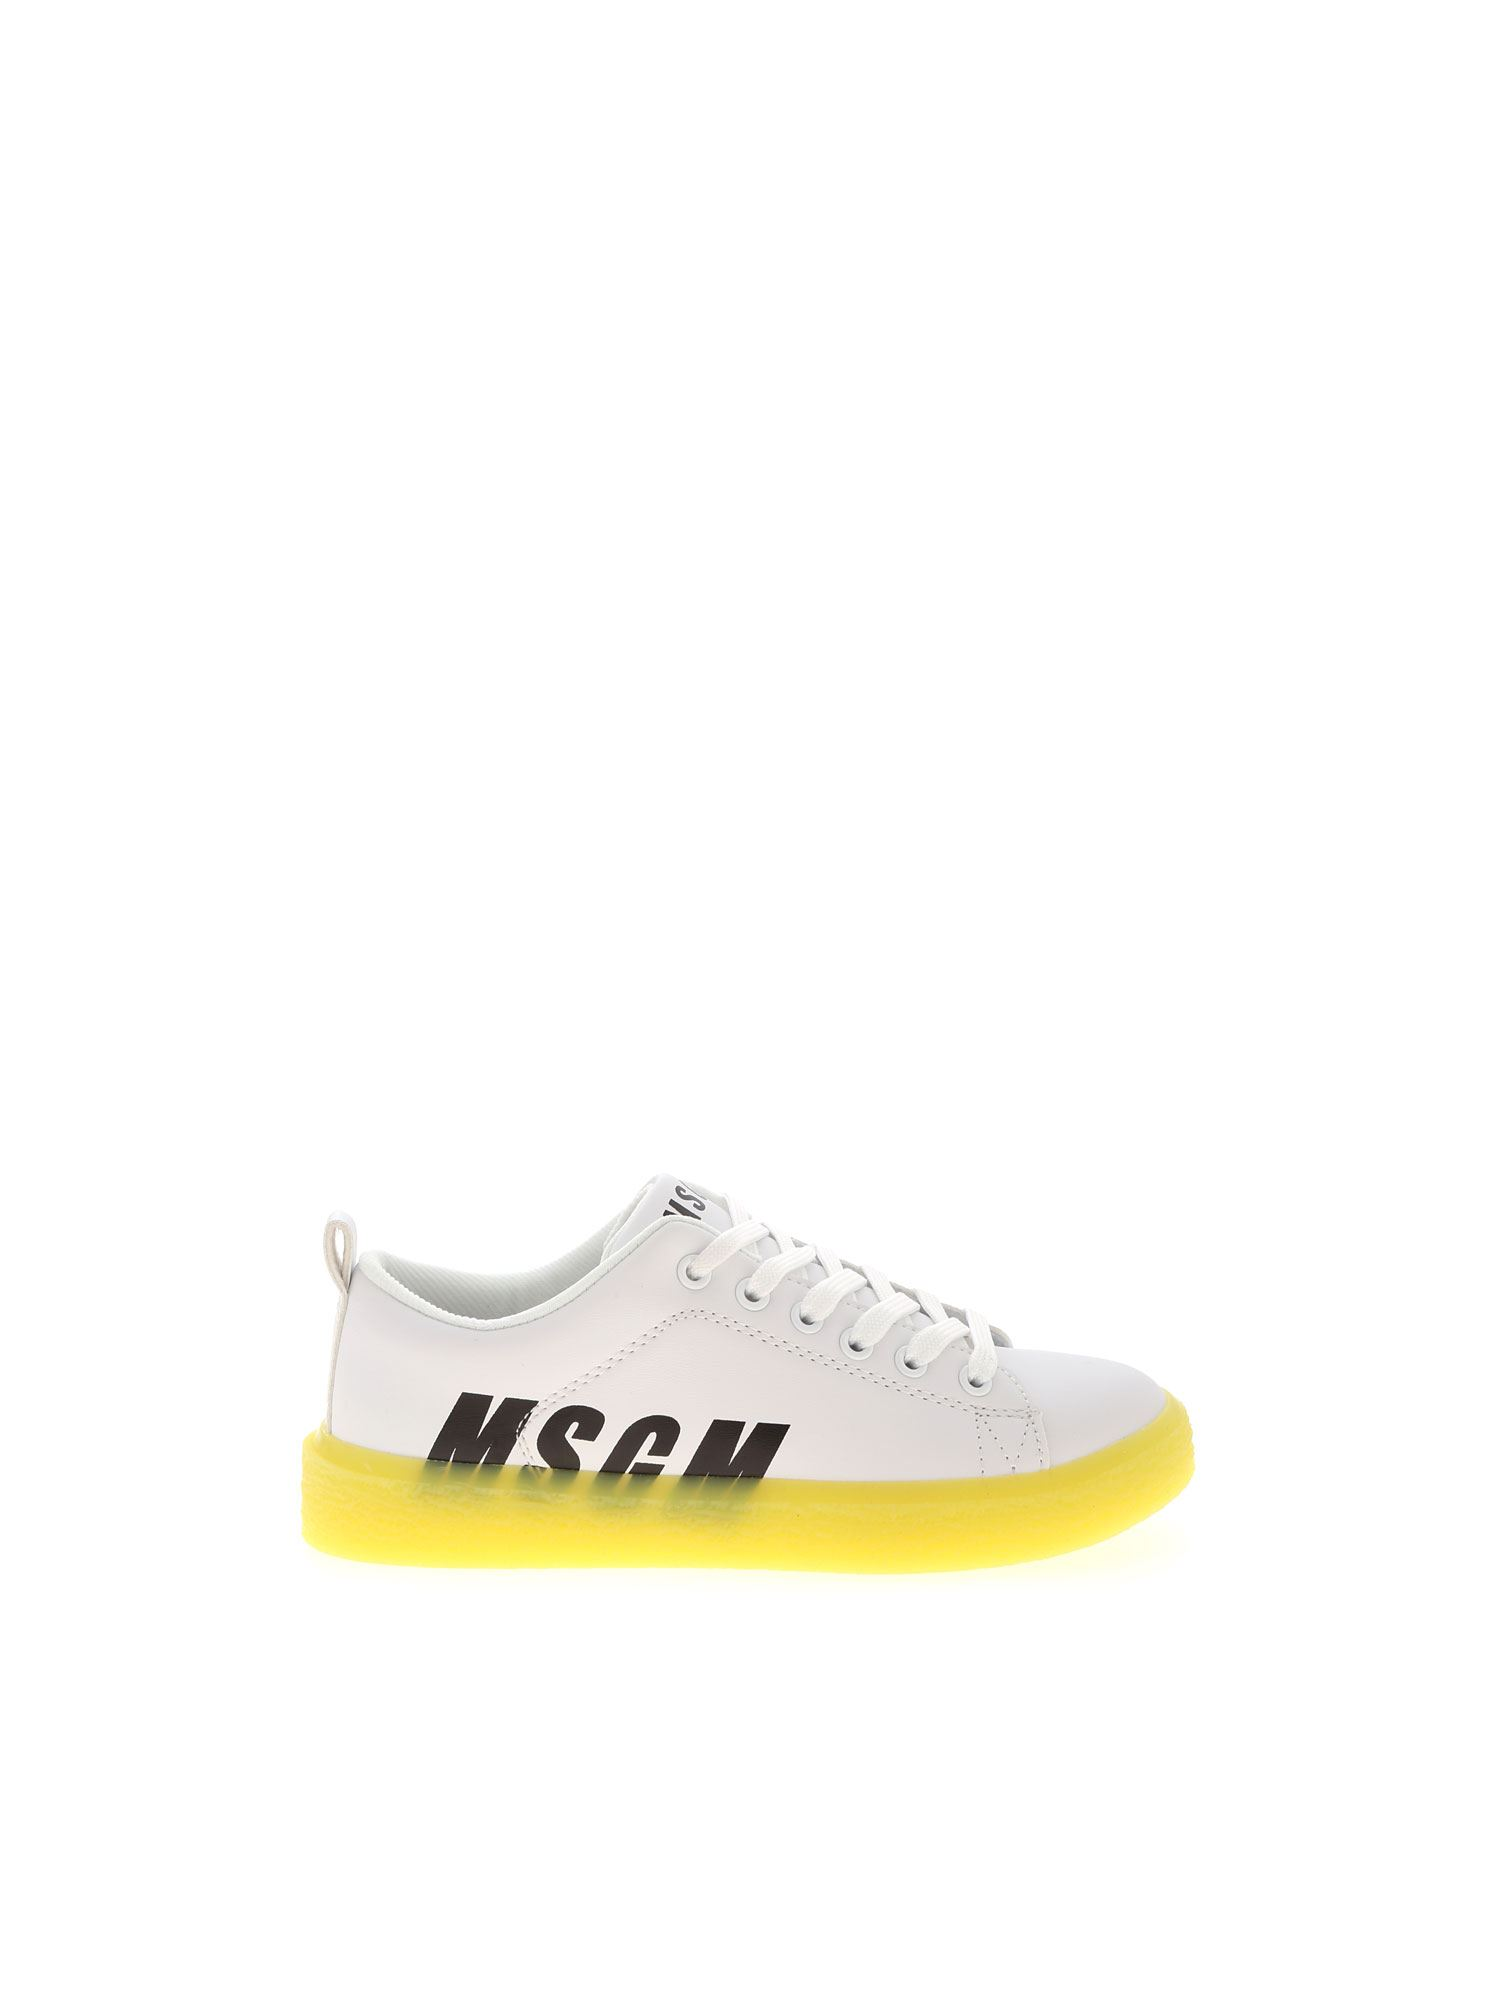 MSGM NEON YELLOW SOLE SNEAKERS IN WHITE